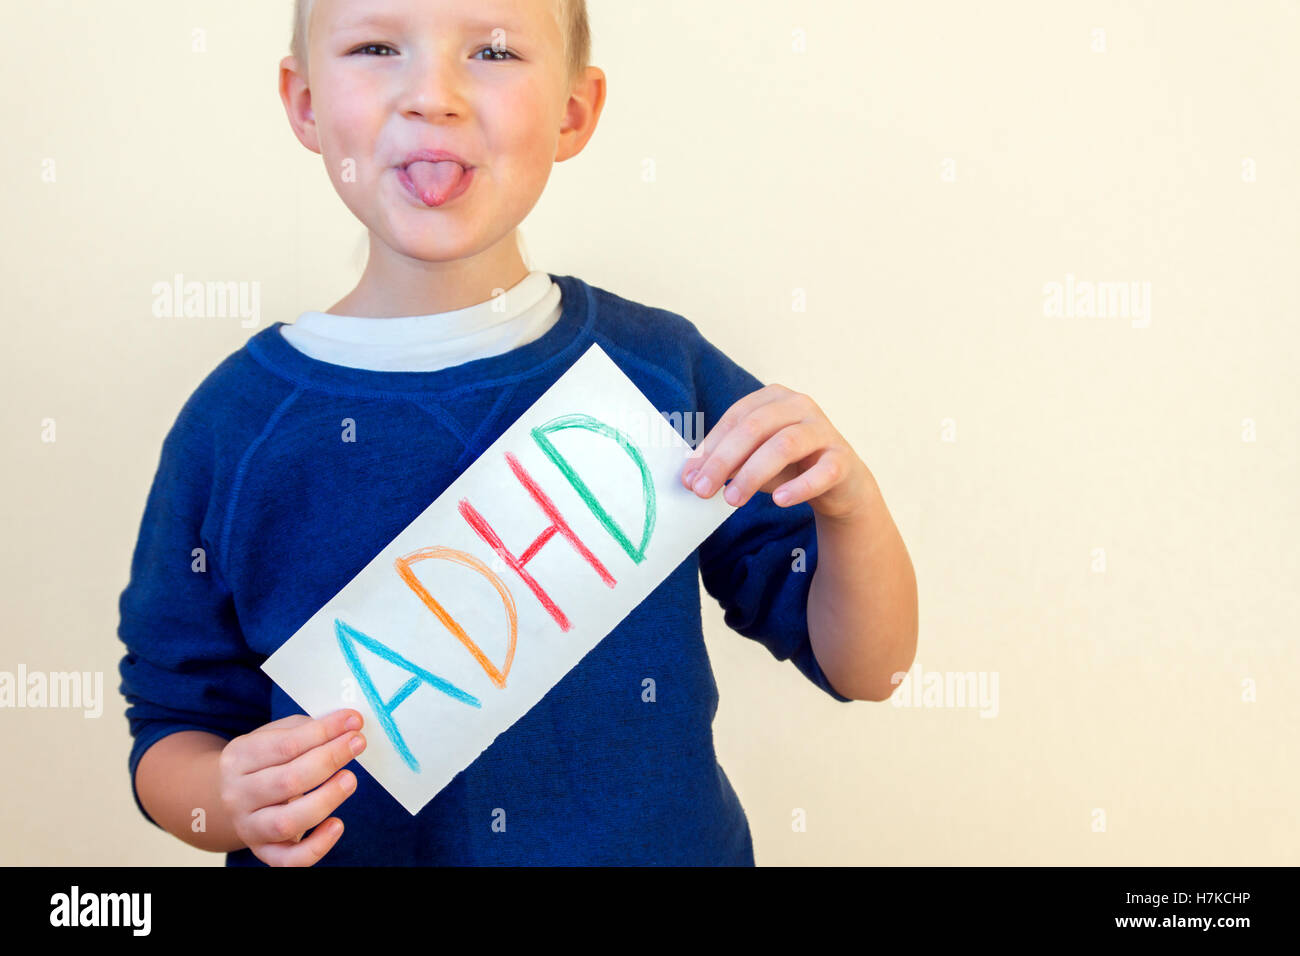 Young boy hold ADHD text written on sheet of paper and show his tongue. ADHD is Attention deficit hyperactivity - Stock Image